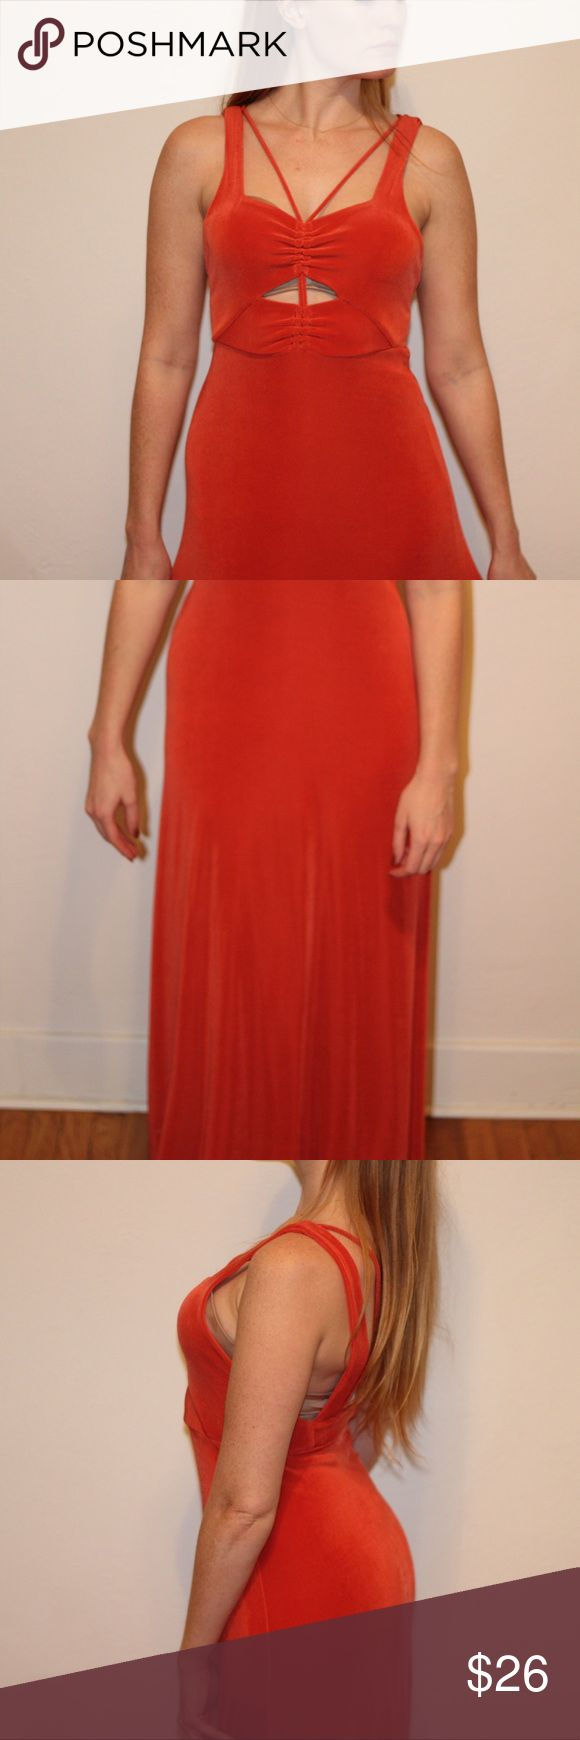 Free People Orange Maxi Dress Never worn, excellent condition, size XS maxi dress with front cutout Free People Dresses Maxi